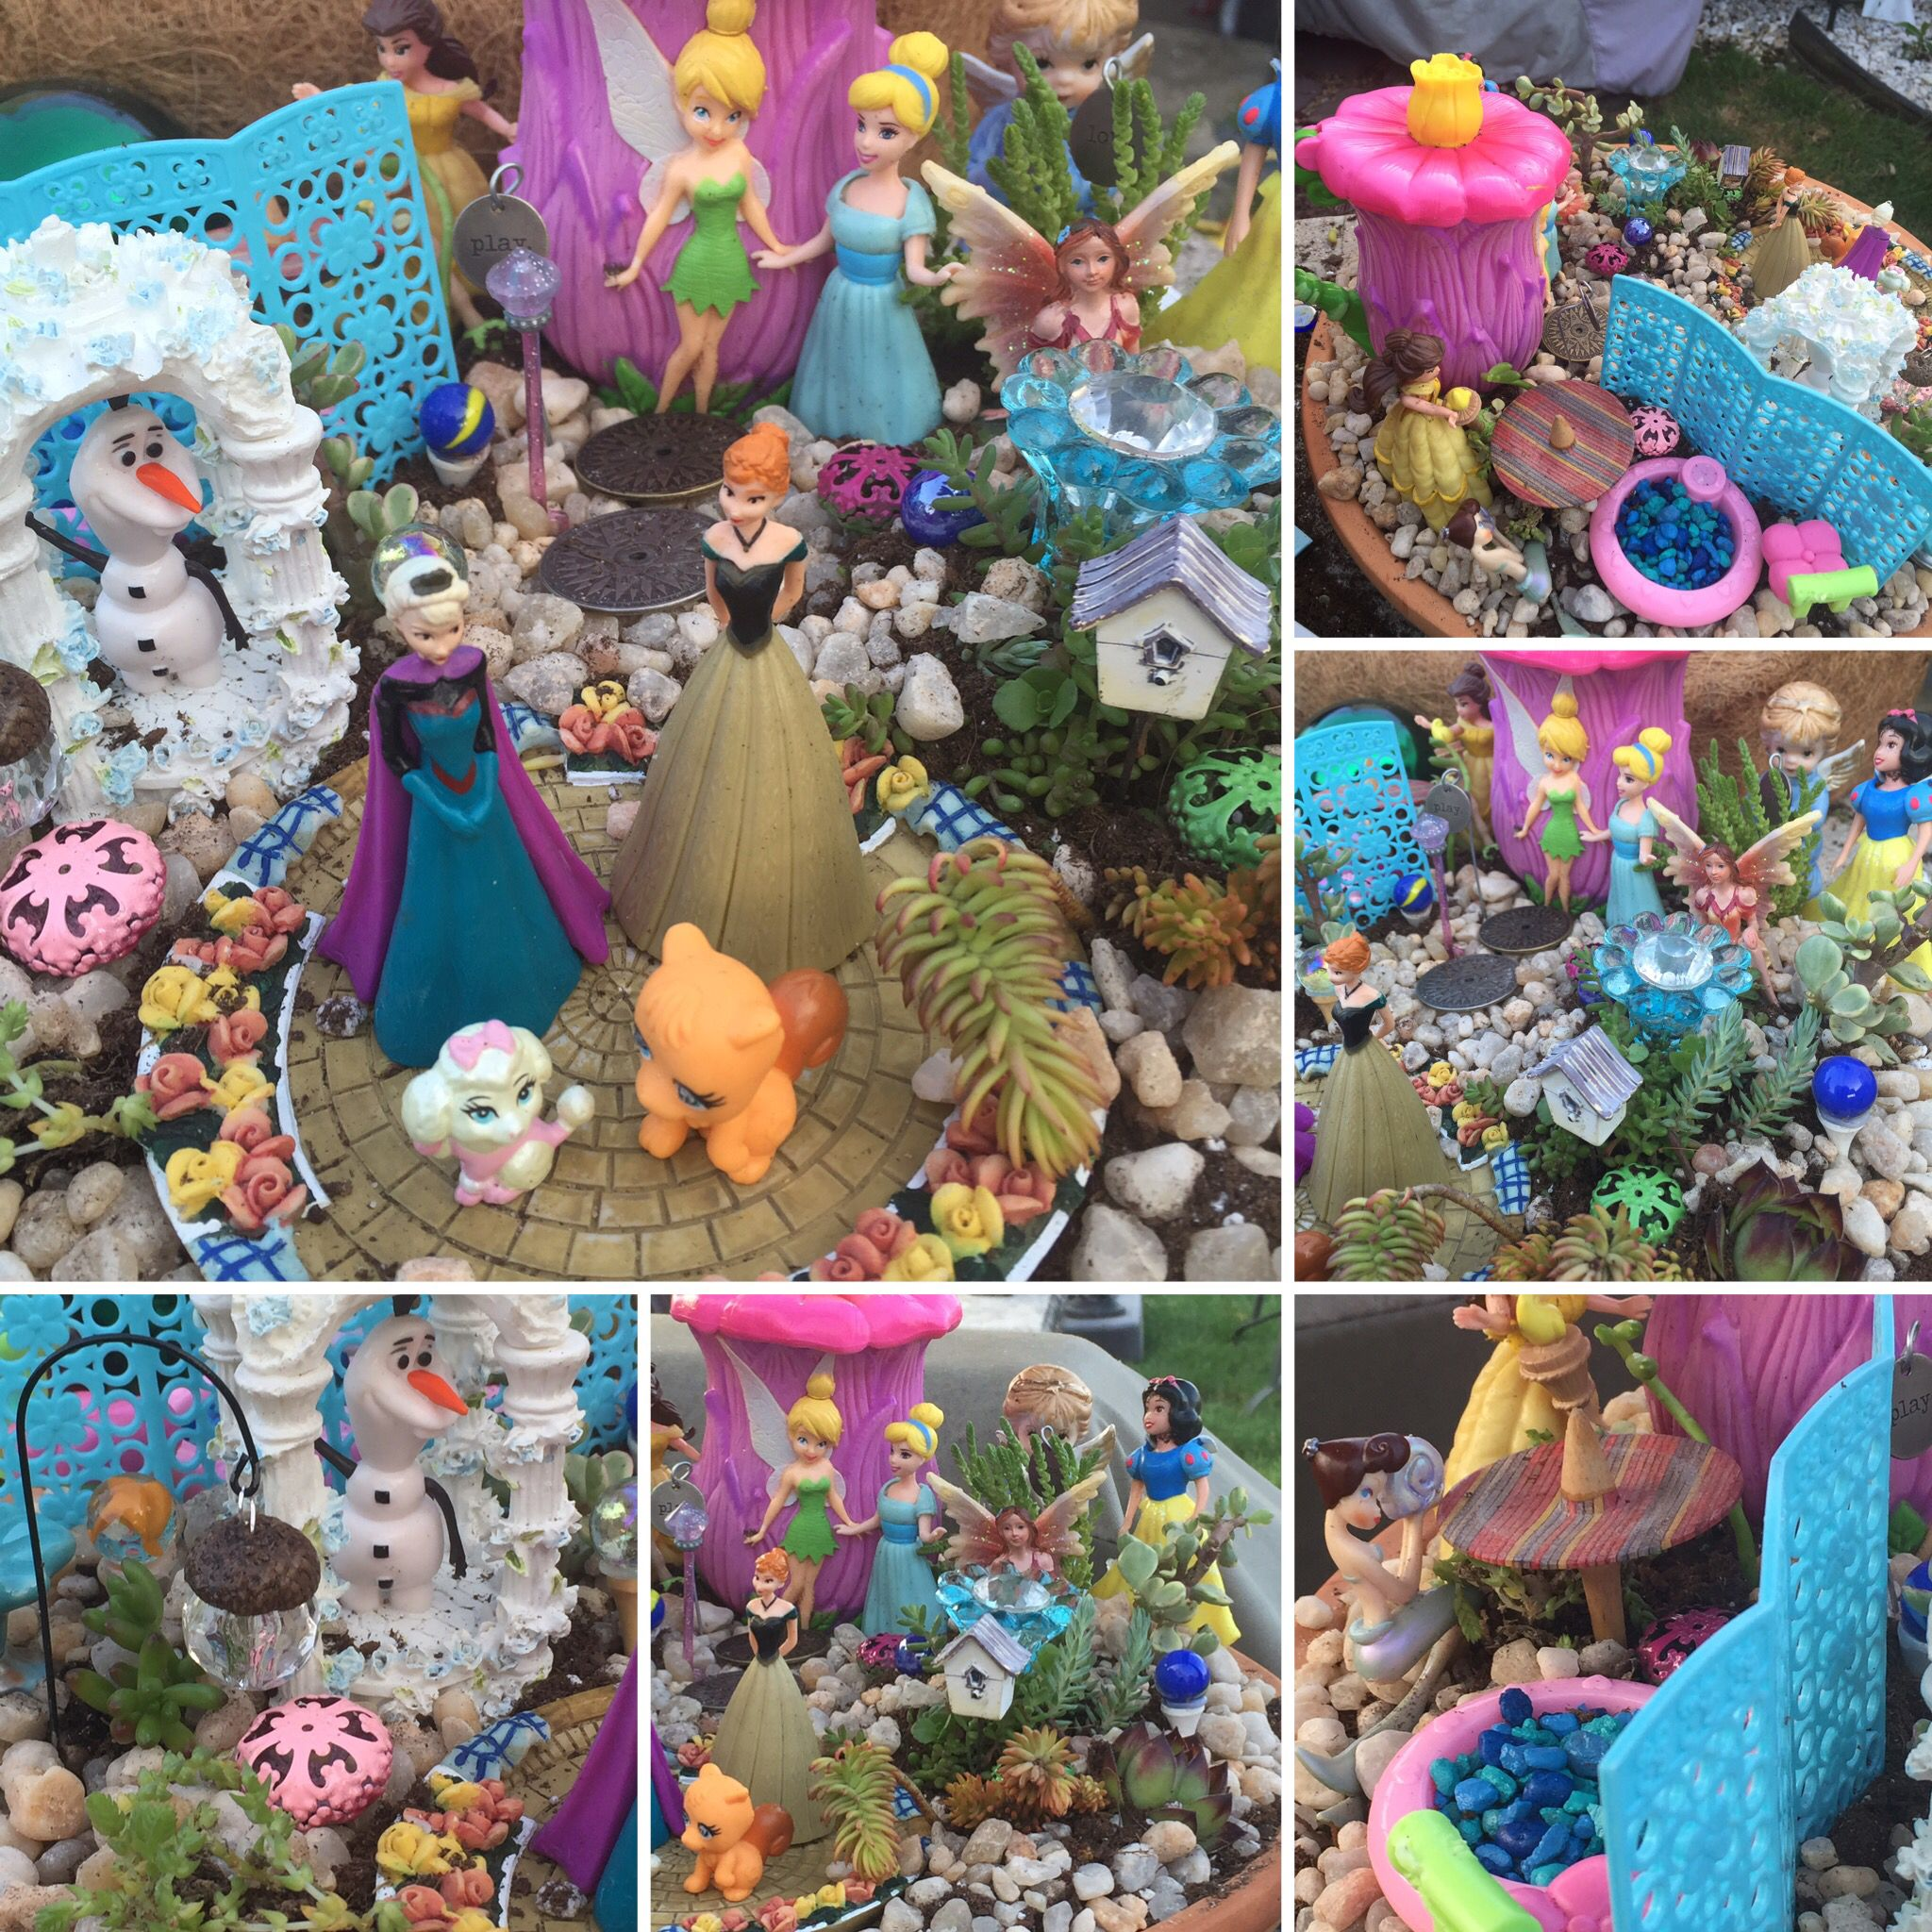 Princess Fairy Garden made out of Polly Pocket dolls